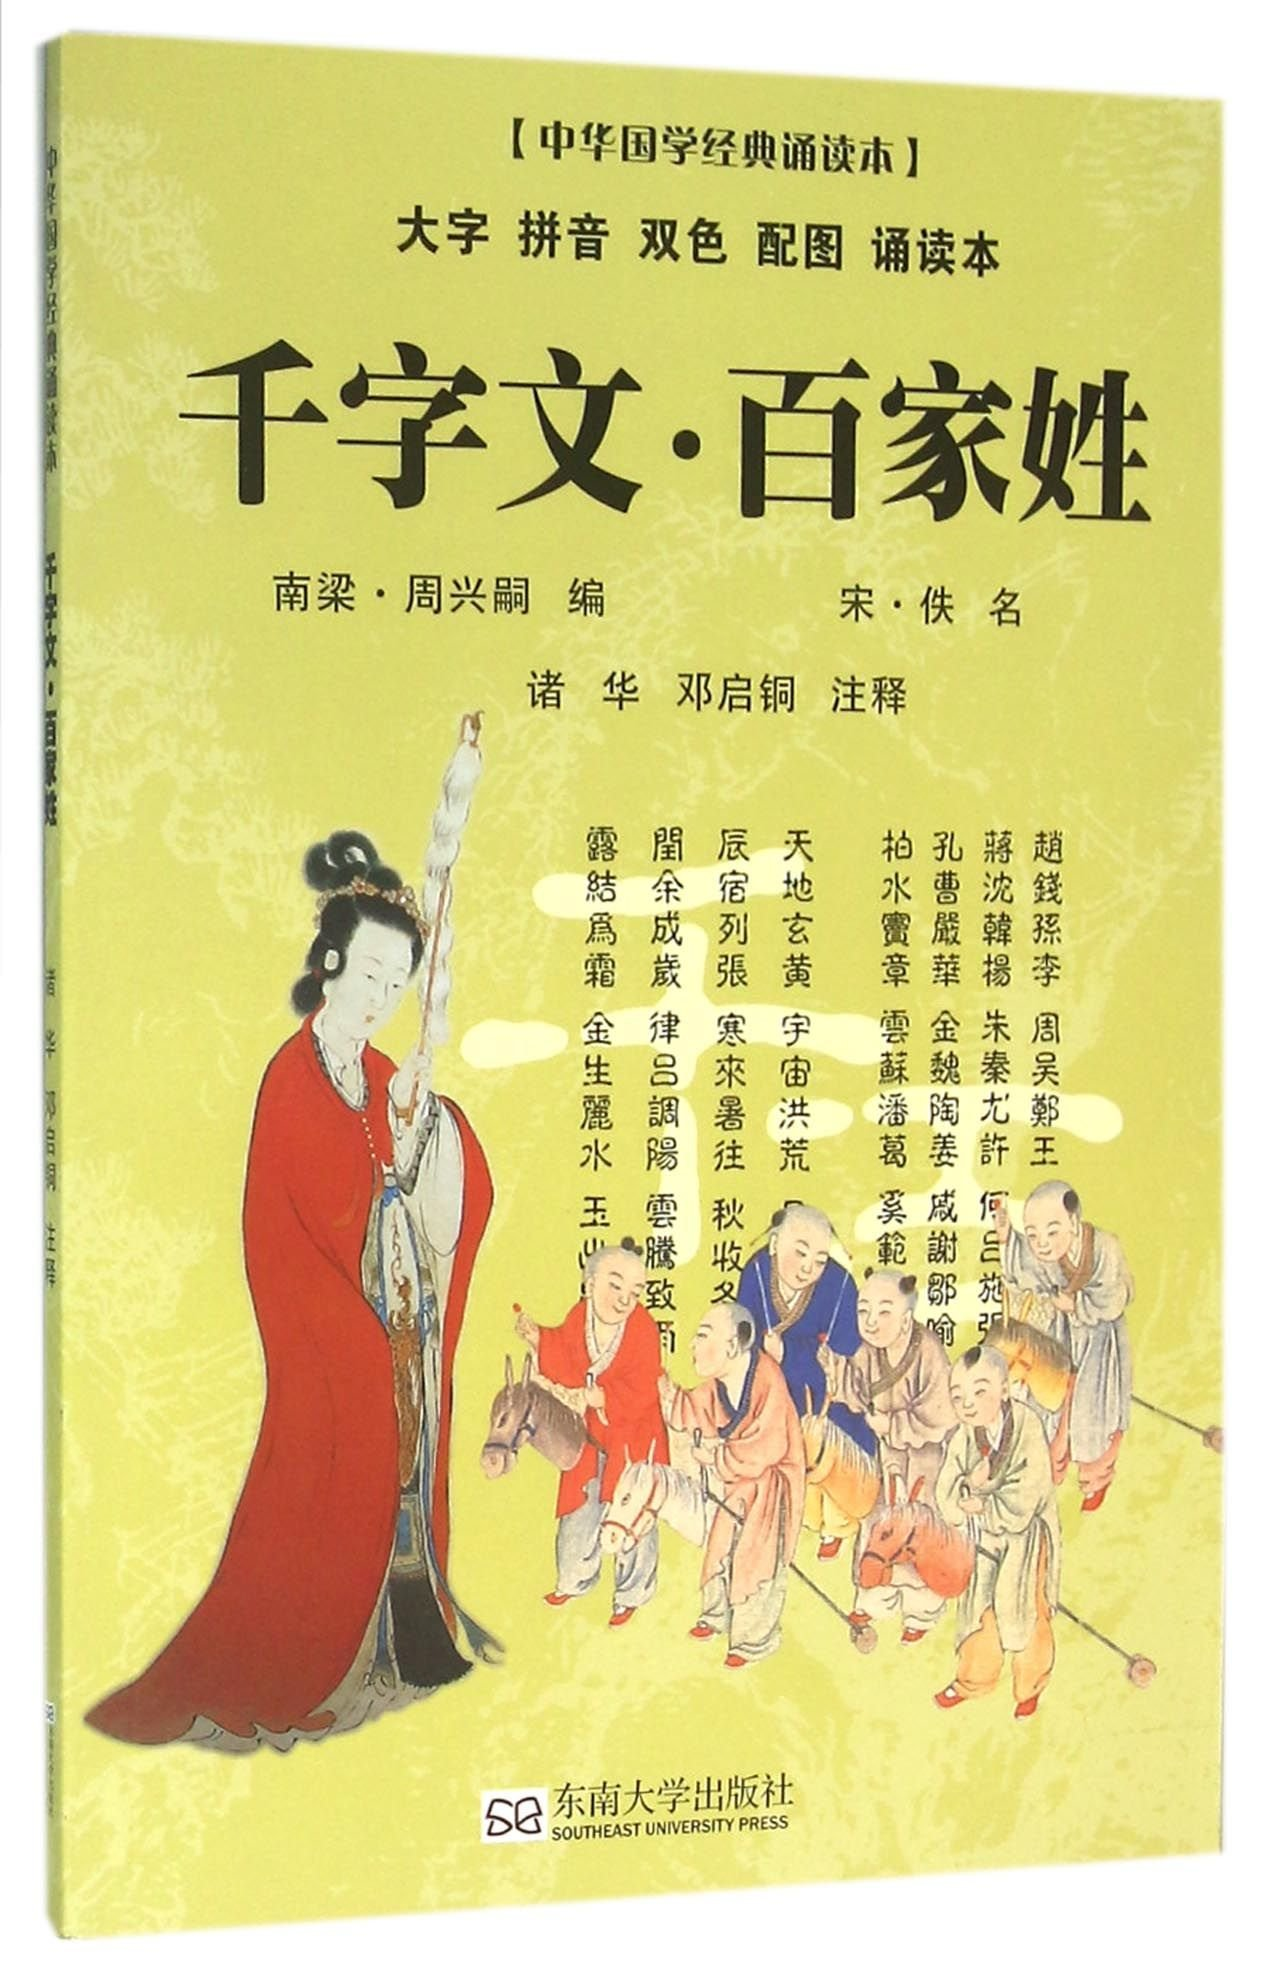 Download Thousand Characters Classics and Hundred Family Surnames (Chinese Edition) ebook